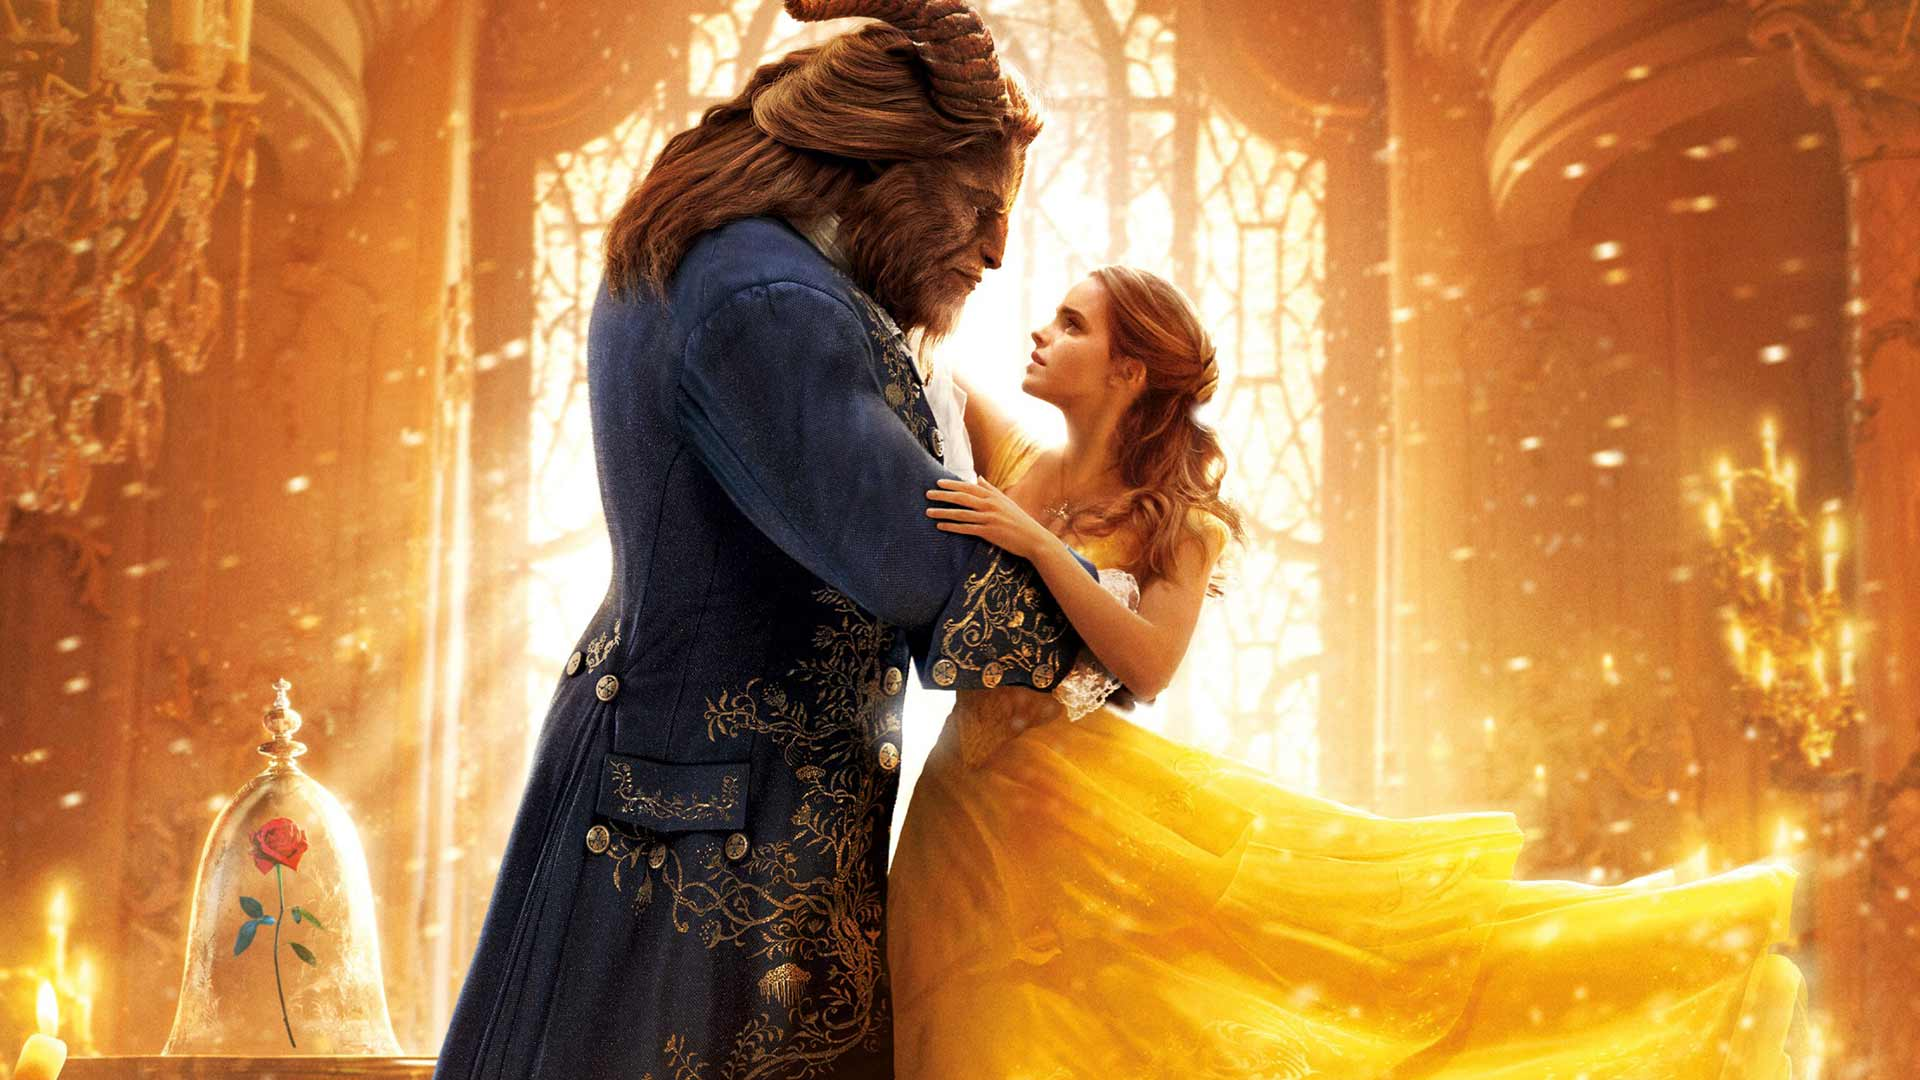 It's Here, It's Here, Beauty And The Beast on DVD Today June 6,2017!